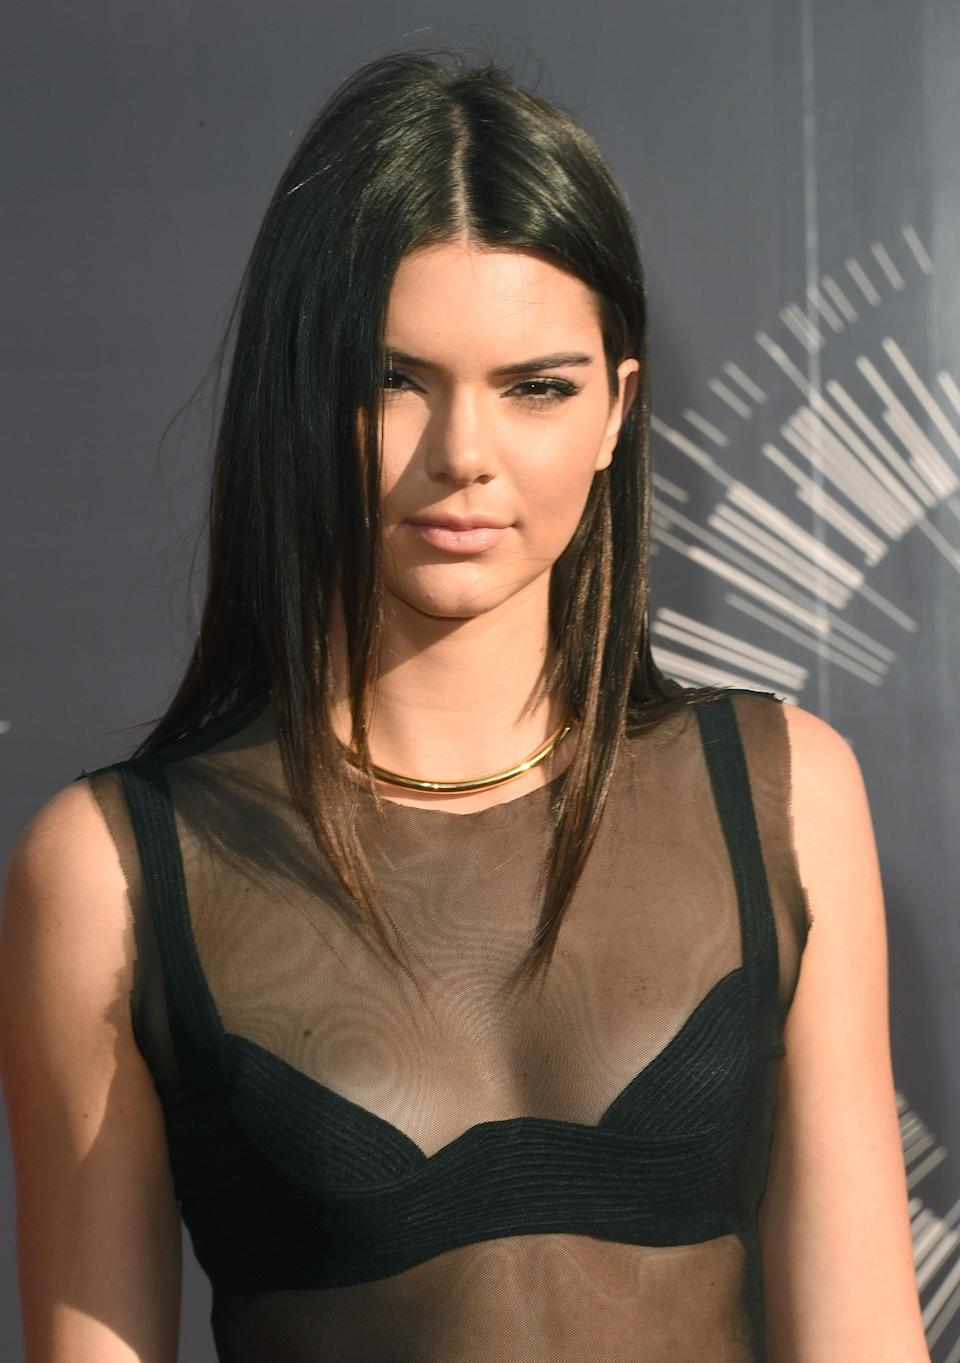 Kendall didn't need flashy lashes or even much of anything at the 2014 VMAs. Her straight hair and glowy makeup made a chic statement on their own.